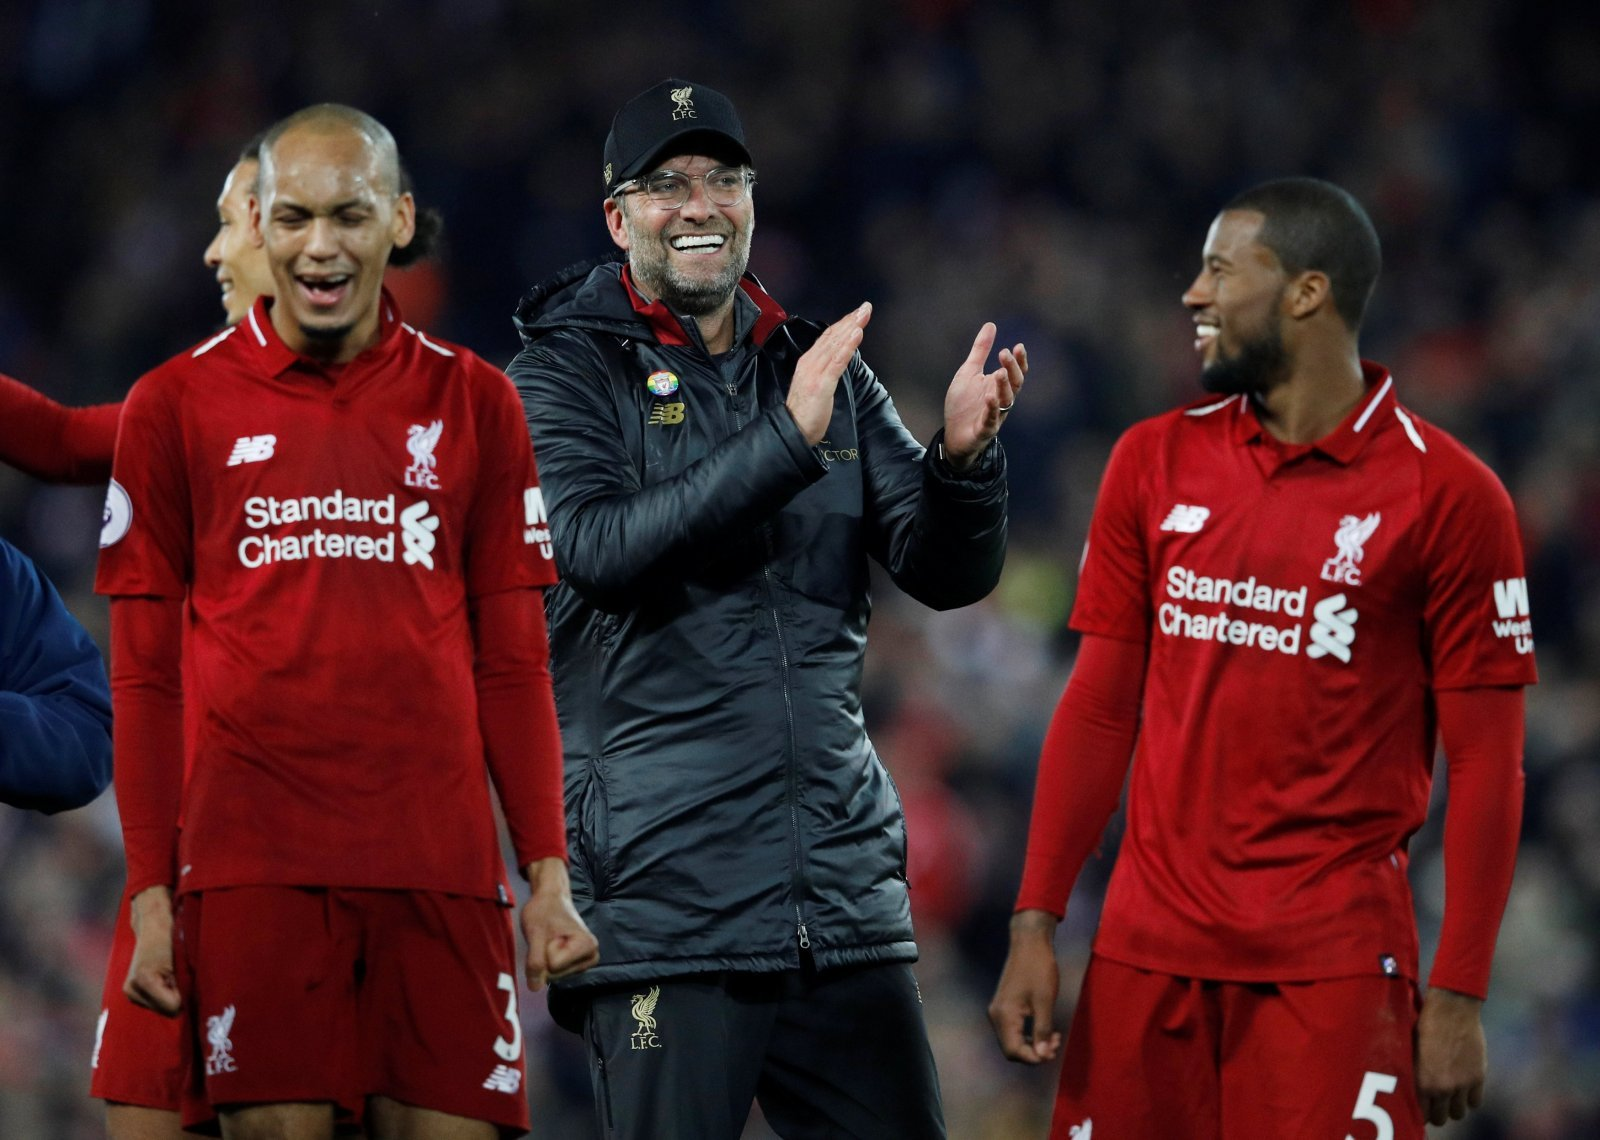 It's painfully obvious that Fabinho must start for Liverpool against Man City